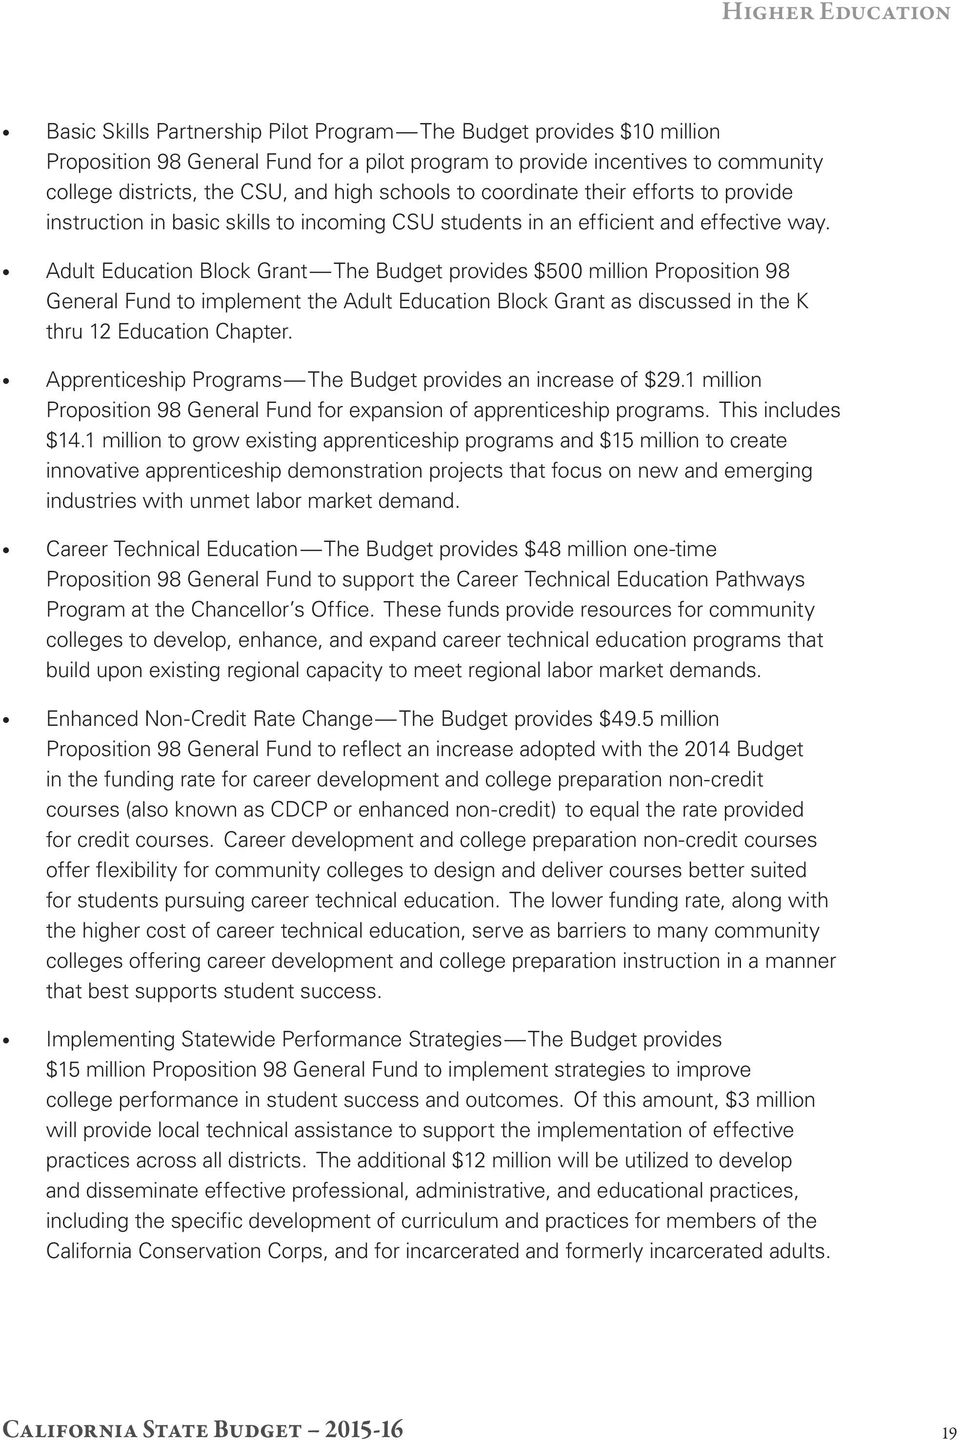 Adult Education Block Grant The Budget provides $500 million Proposition 98 General Fund to implement the Adult Education Block Grant as discussed in the K thru 12 Education Chapter.